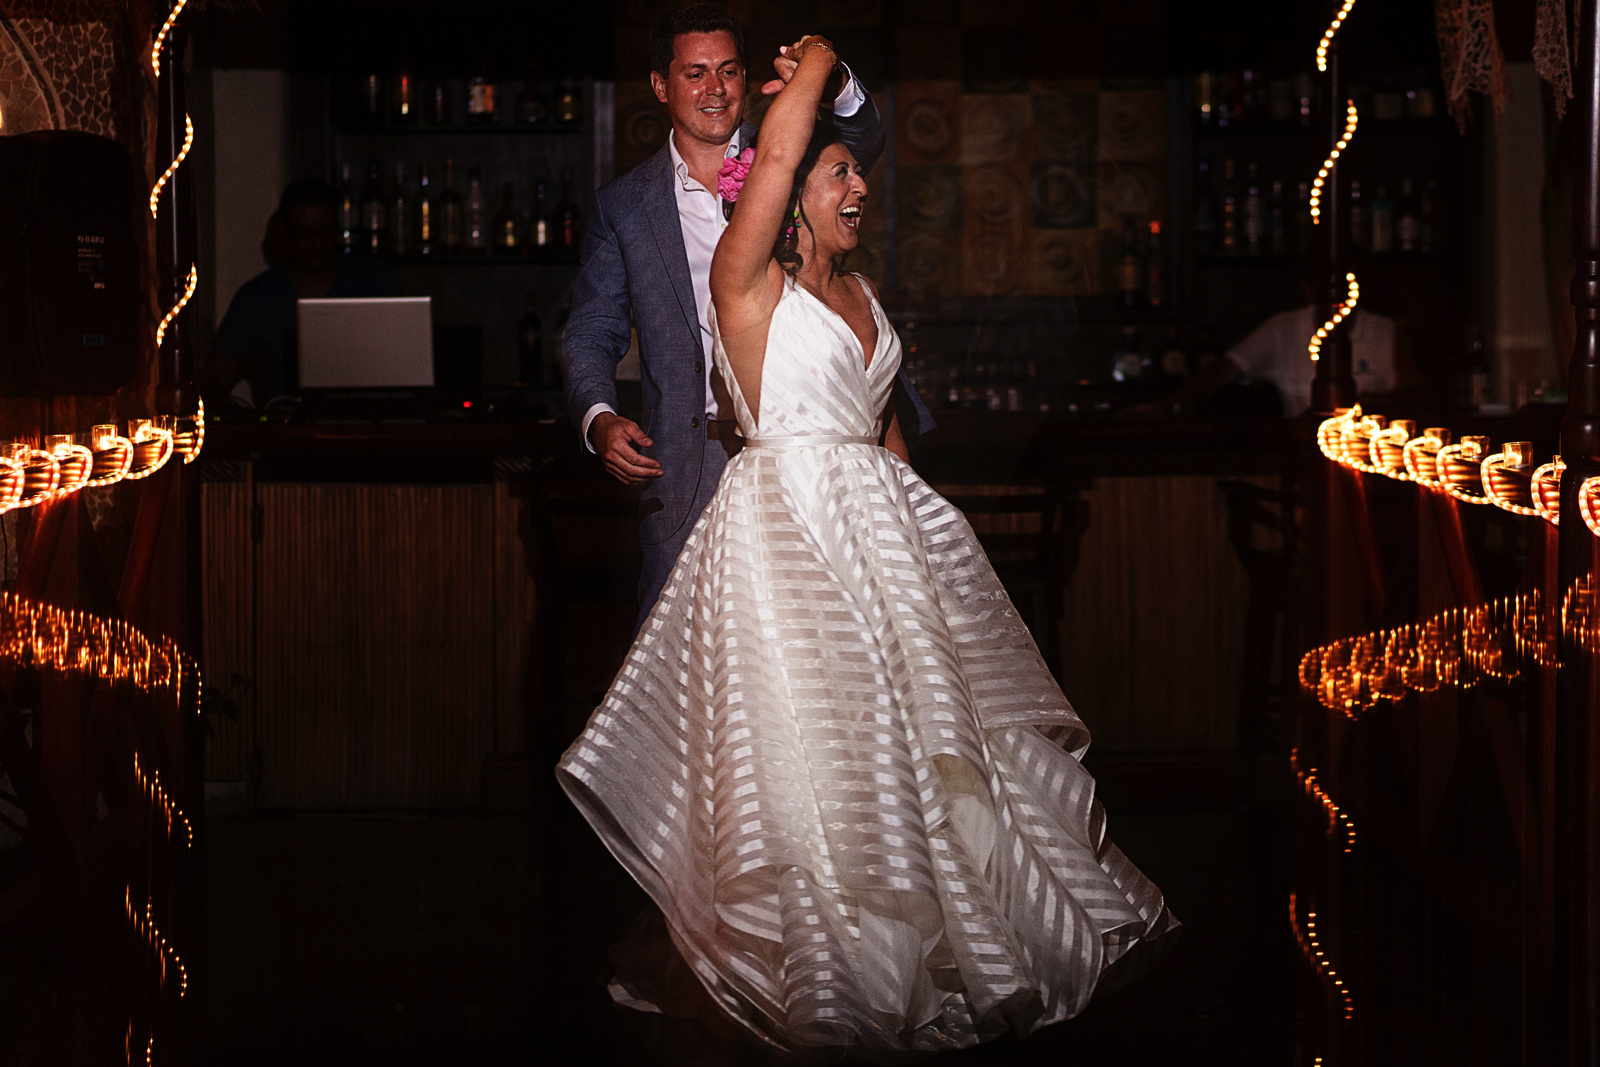 groom-and-bride-first-dance